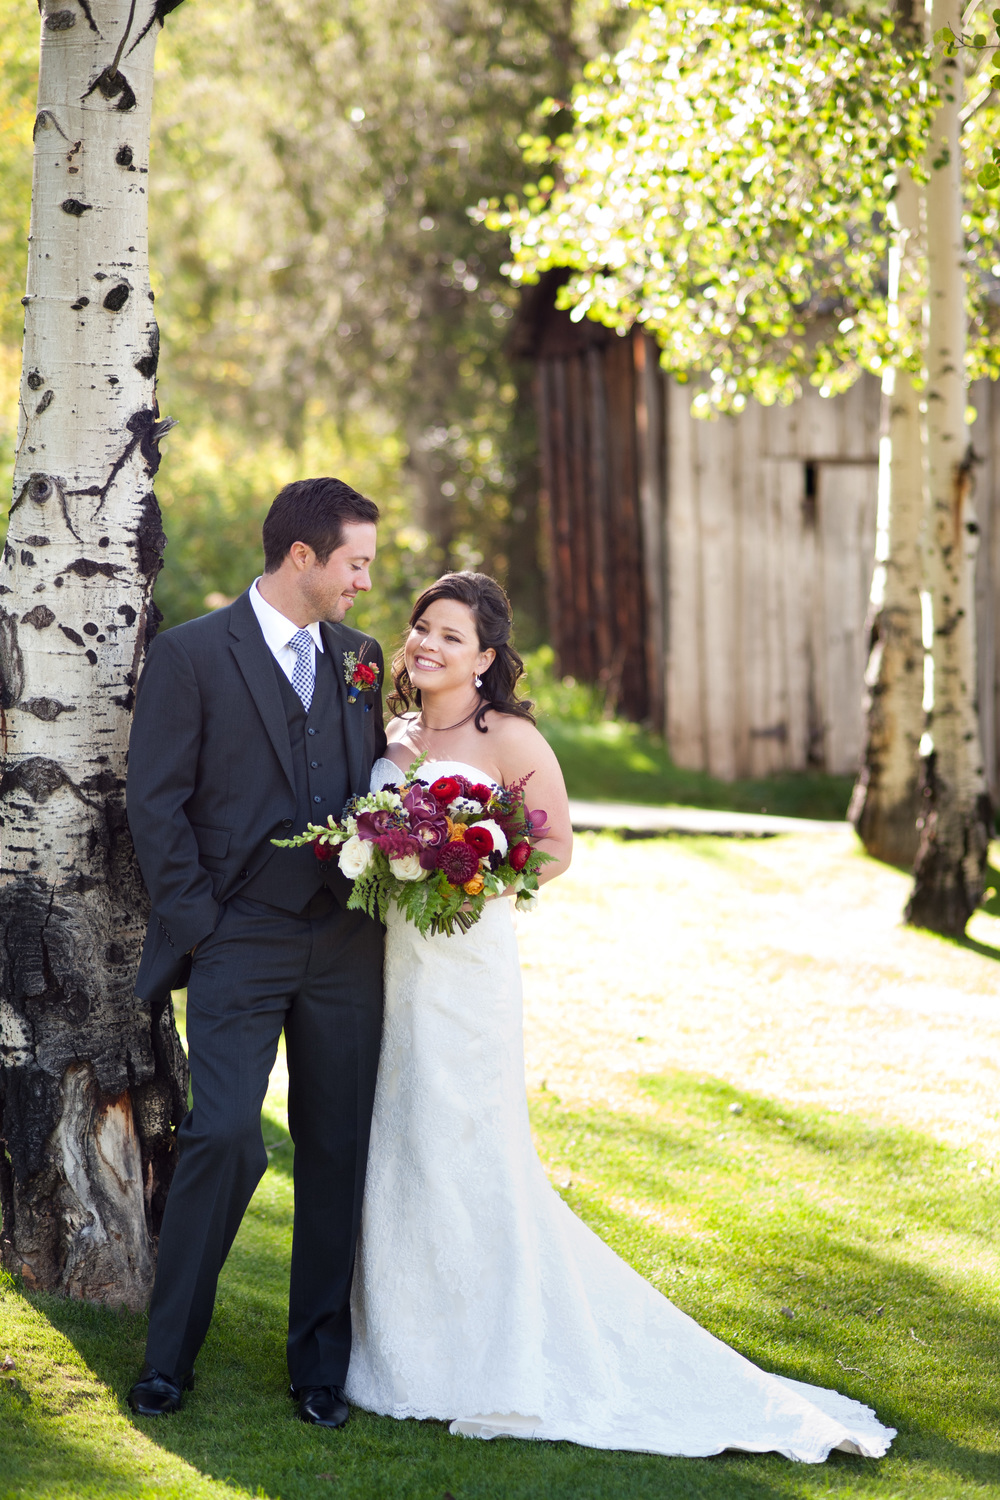 Tara | September 2014 | Westin Riverfront Resort & Spa Beaver Creek Mountain | Avon, Colorado |  Brinton Studios